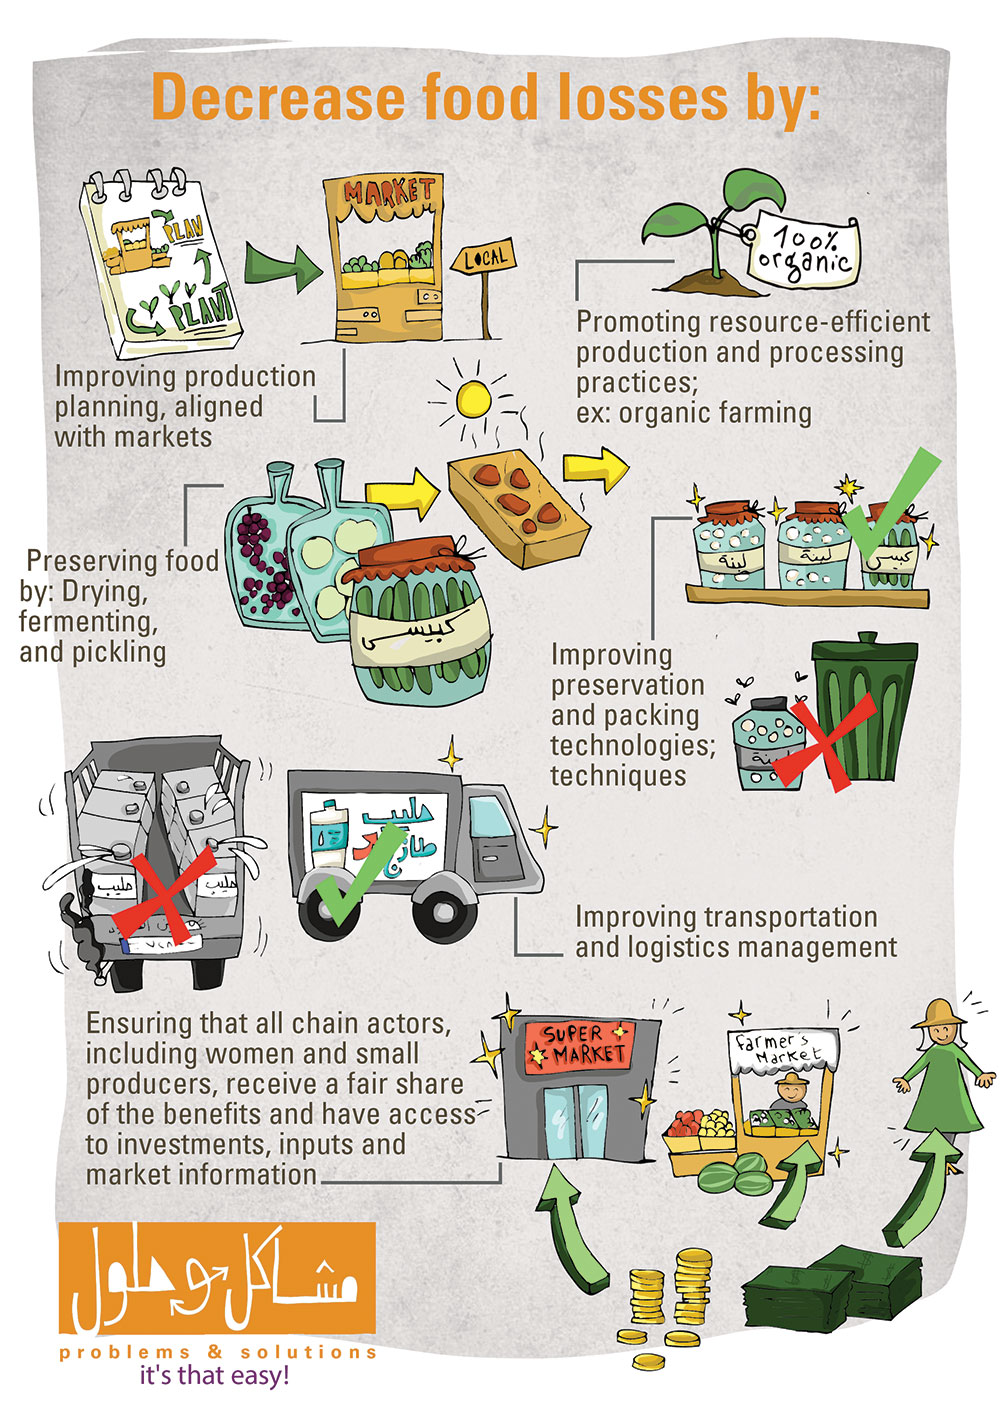 TIPS FOR FARMERS, PRODUCERS, AND CONSUMERS